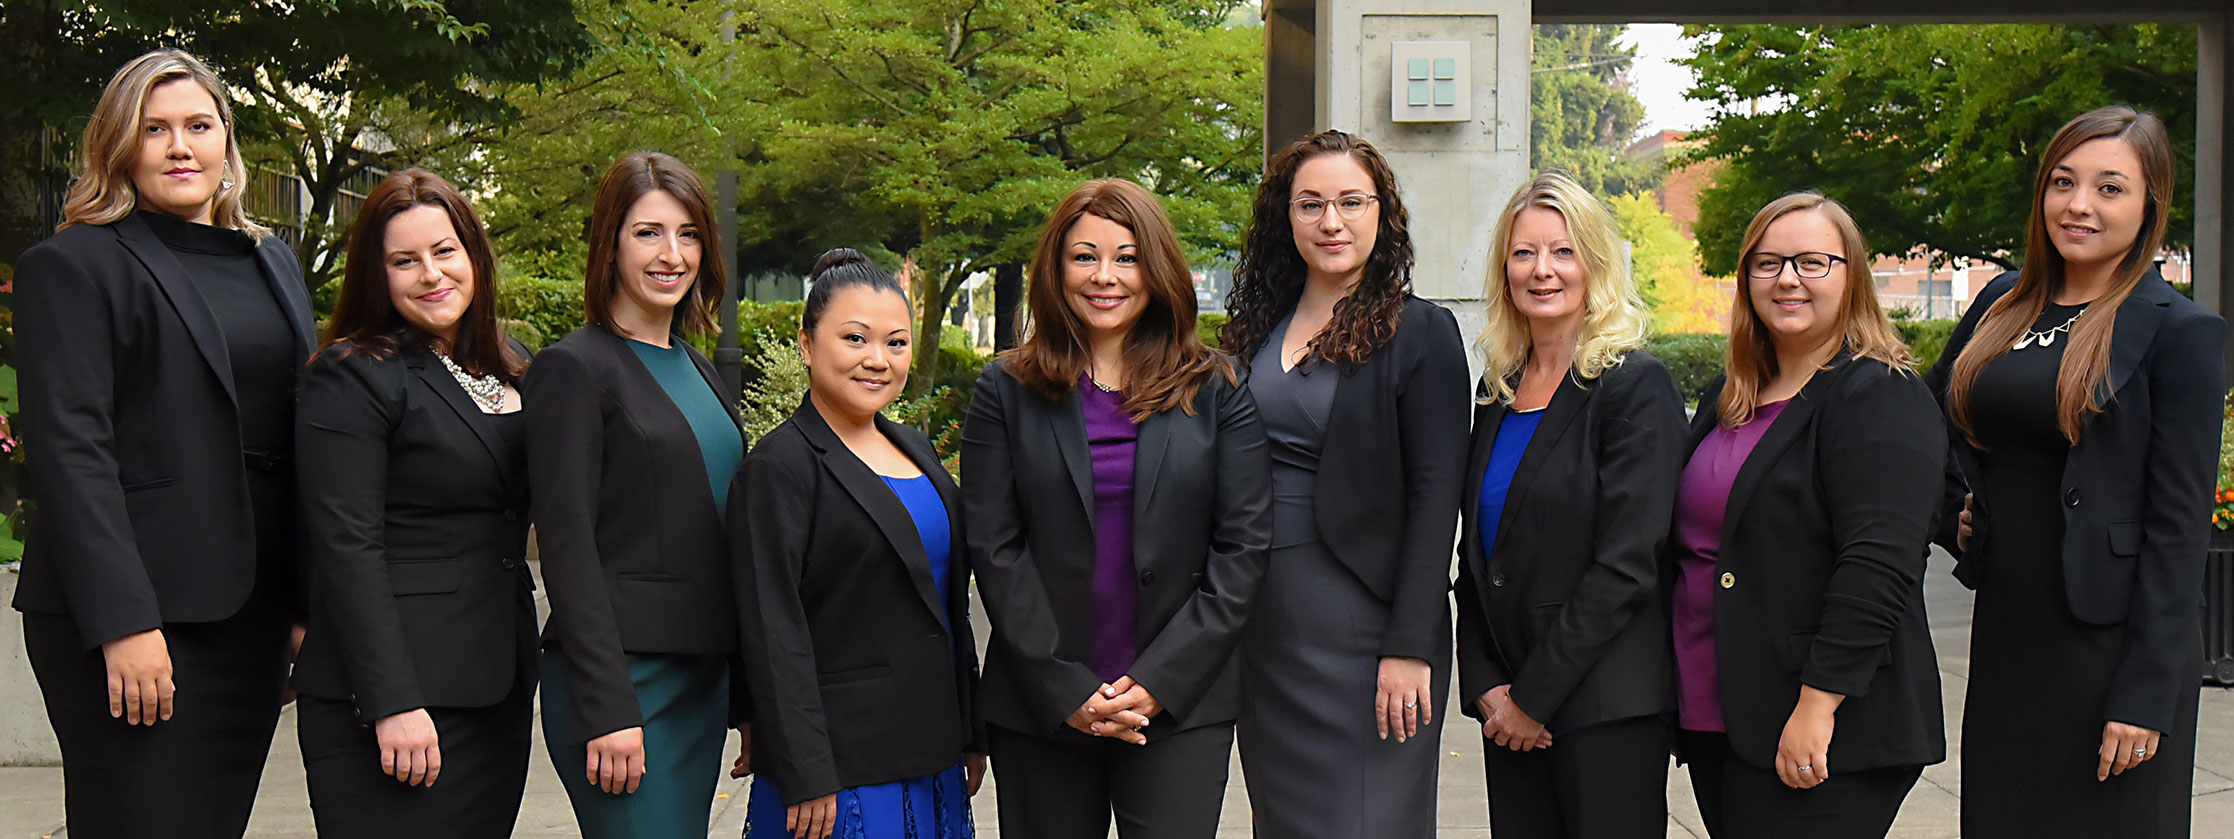 Elizabeth Christy Law Firm Team Photo